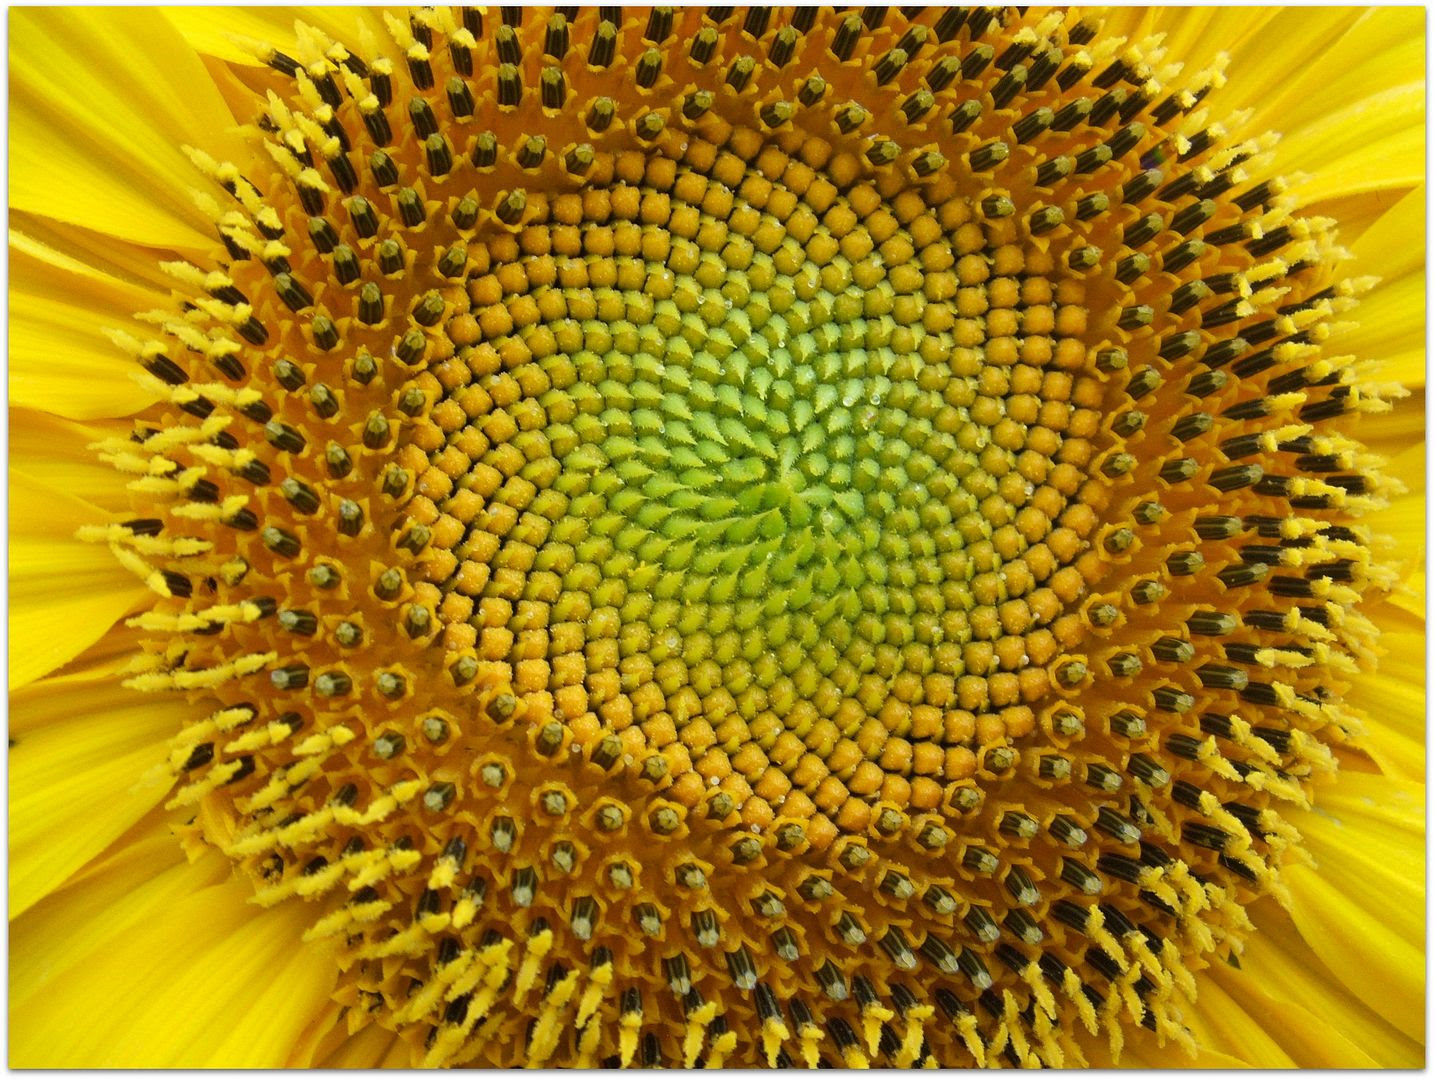 Giant Gray Stripe Sunflower by Angie Ouellette-Tower for godsgrowinggarden.com photo 008_zps5cdf831c.jpg